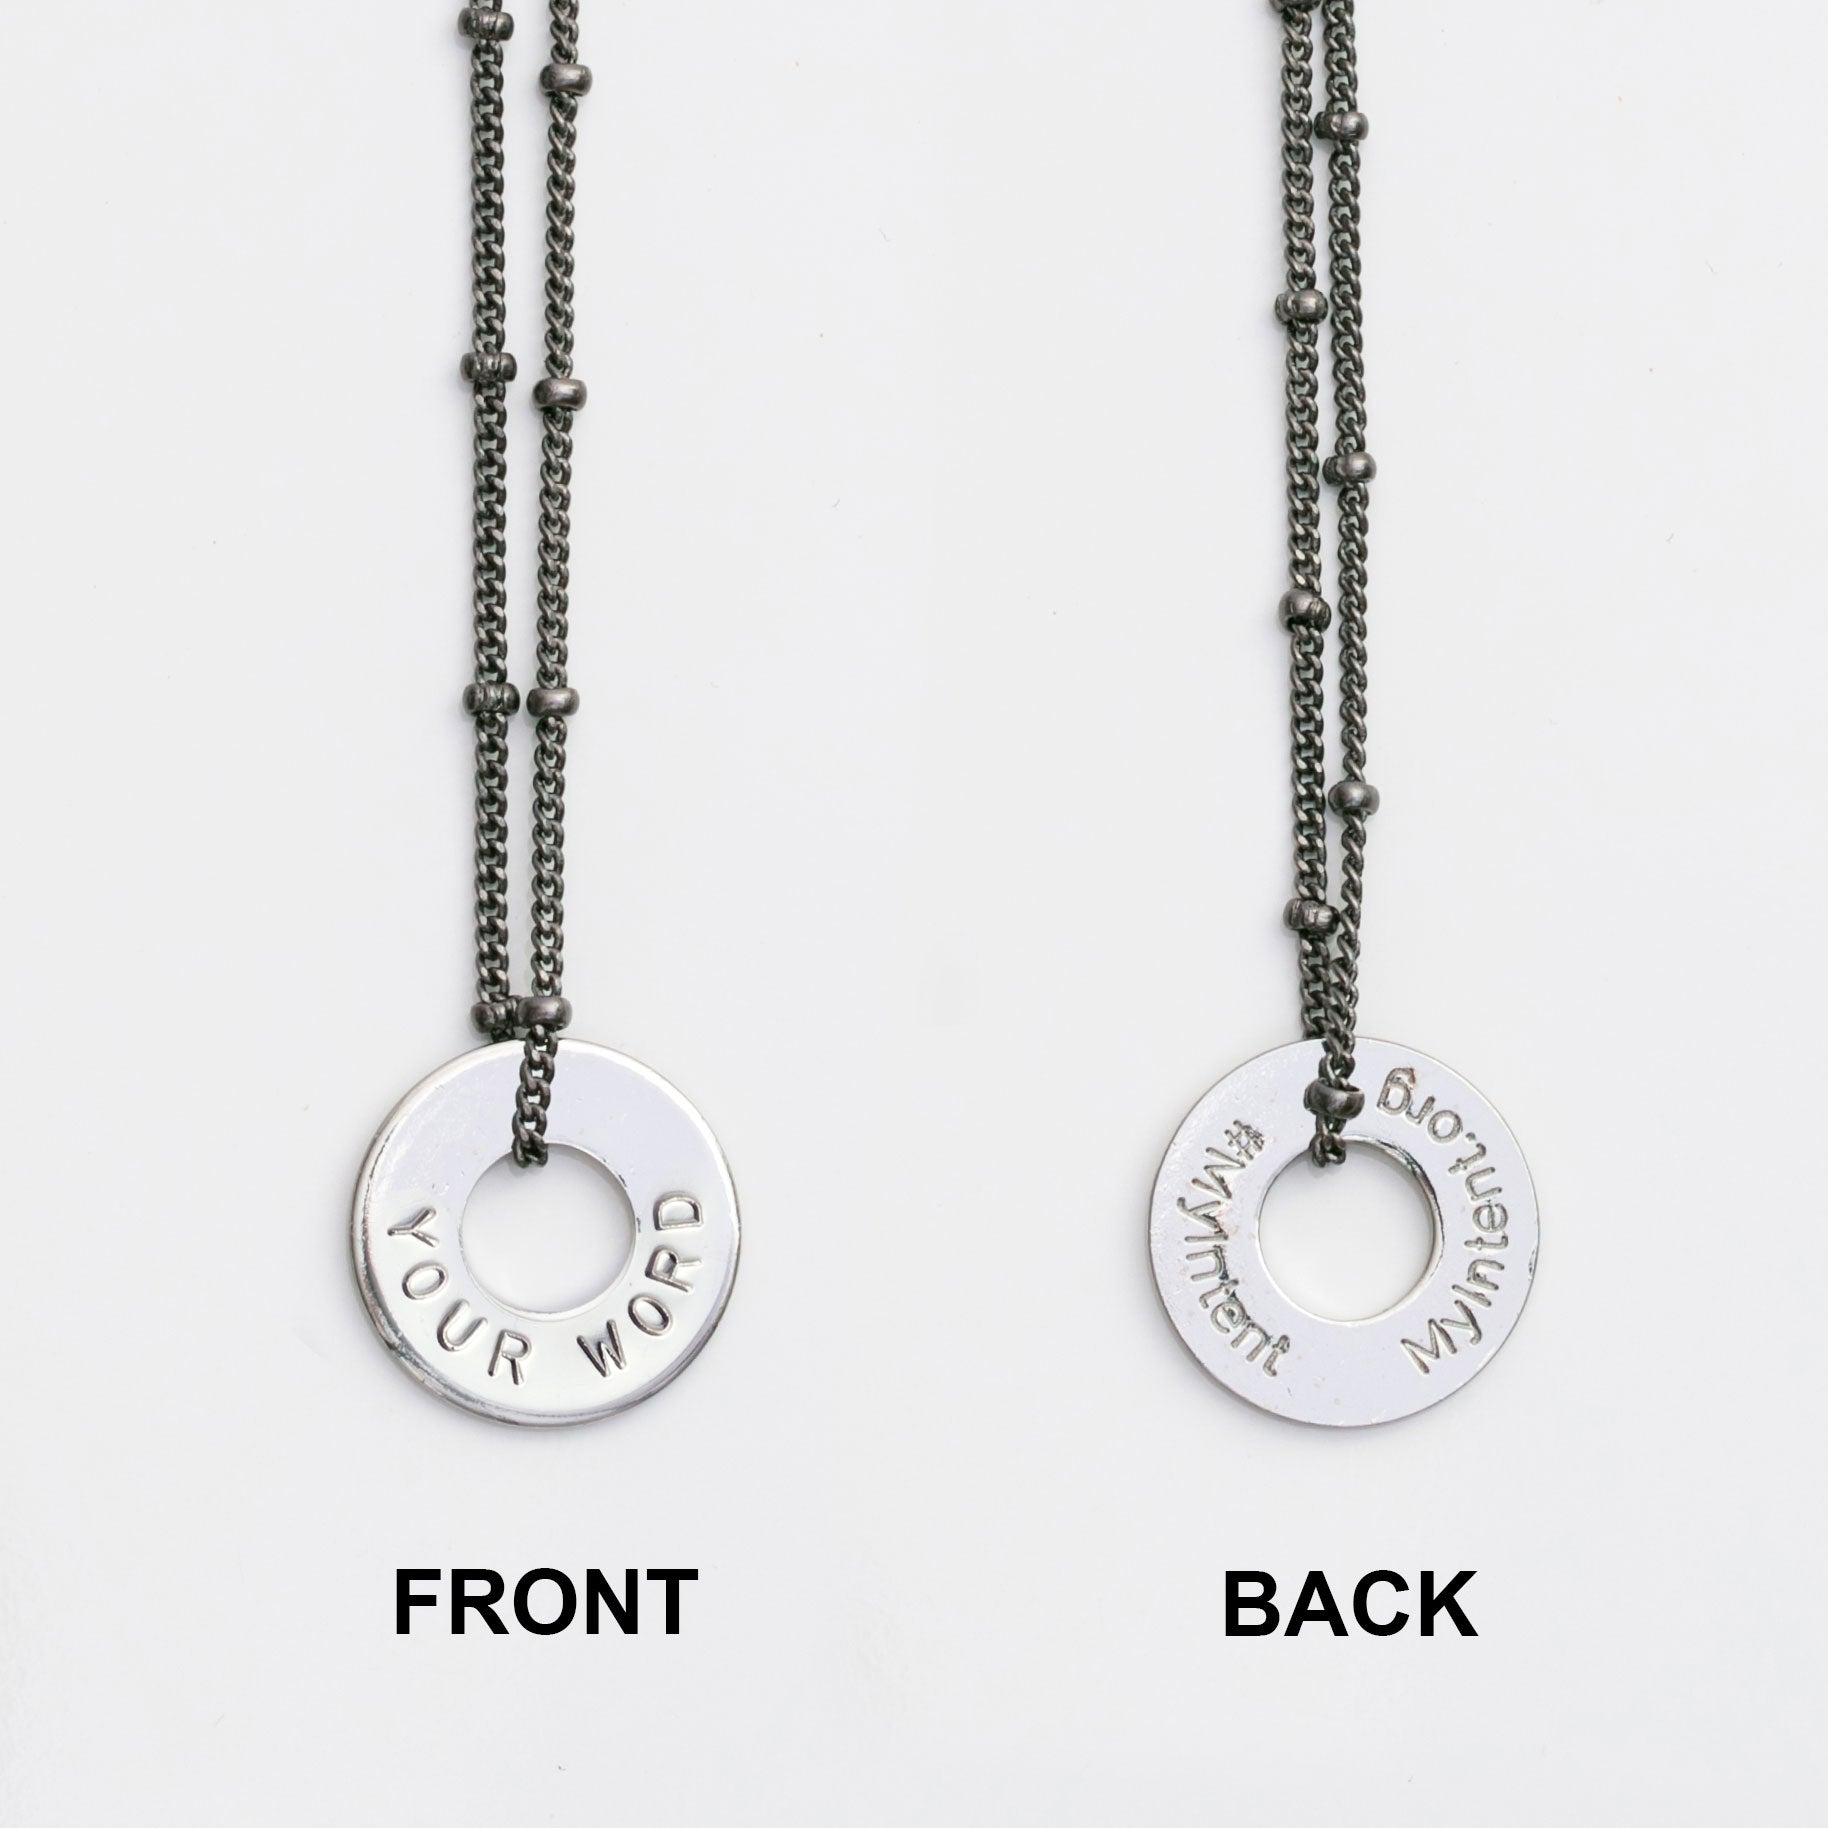 MyIntent Custom Bead Necklace shows YOUR WORD on front and #MyIntent MyIntent.org on back of token